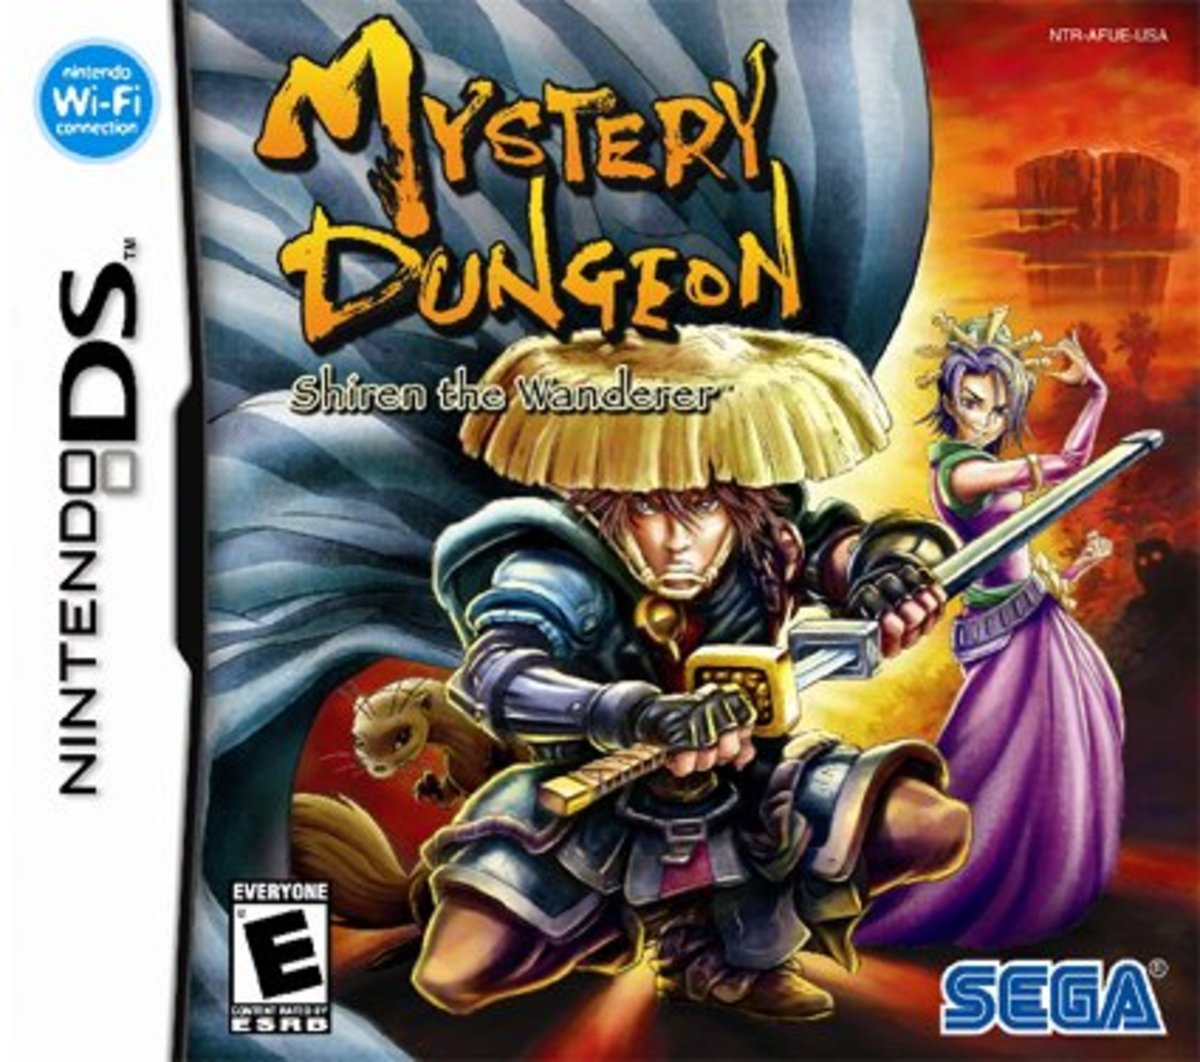 Shiren the Wanderer for the DS